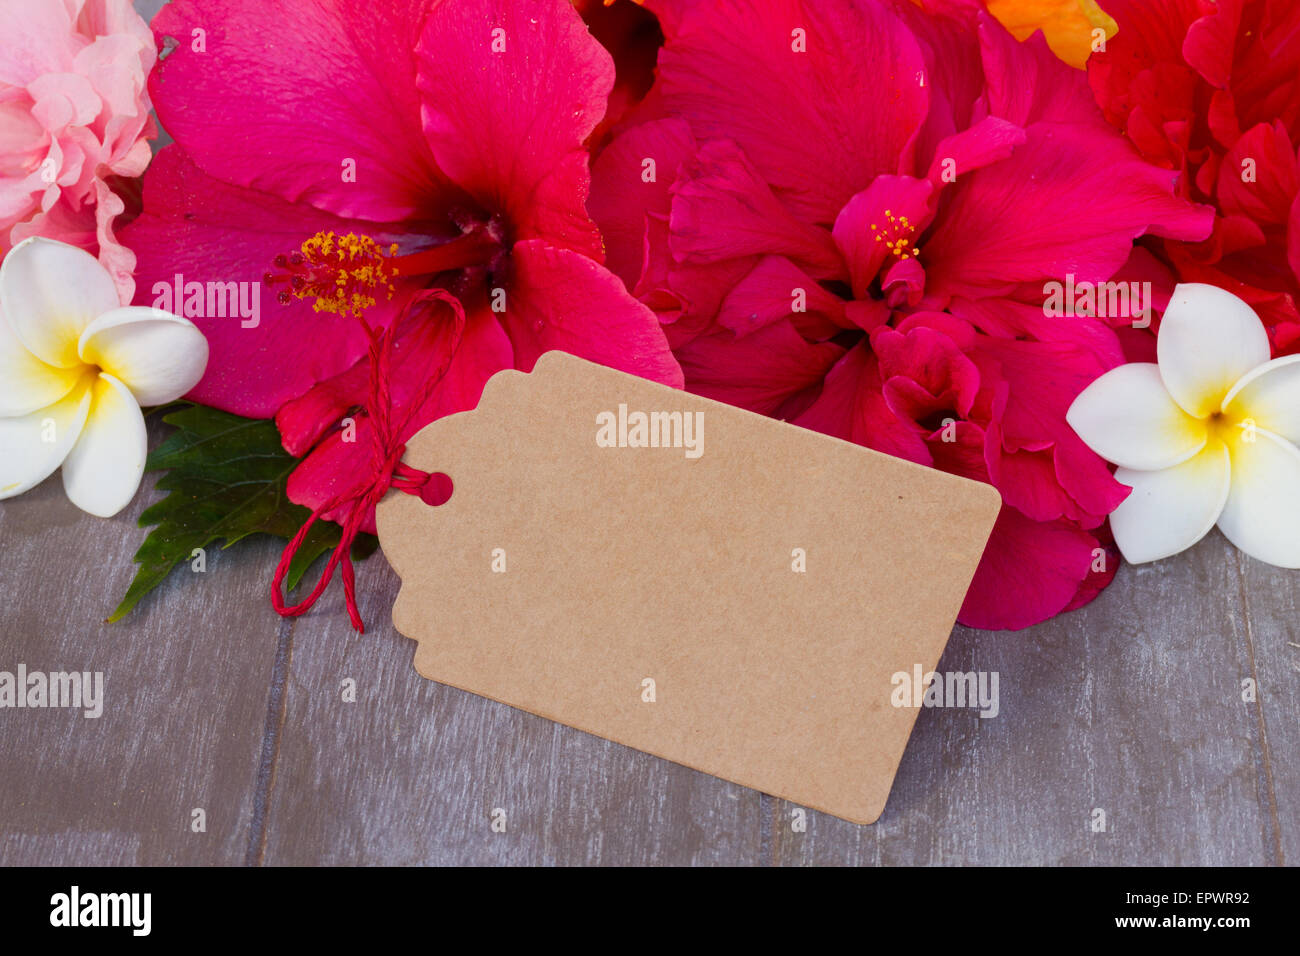 colorful hibiscus flowers with tag Stock Photo: 82930990 - Alamy